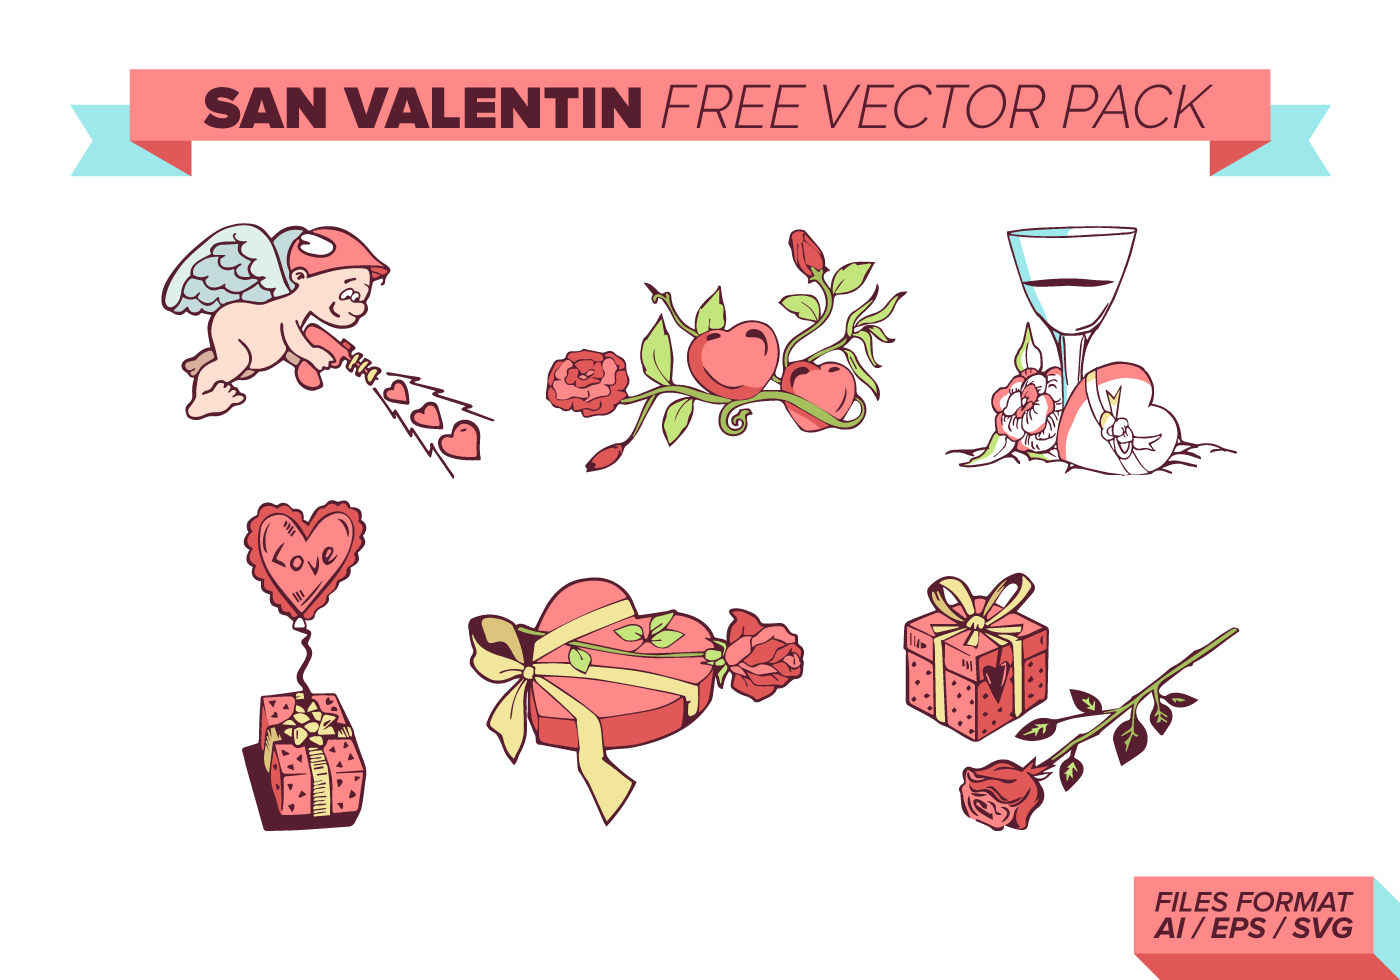 San Valentin Free Vector Pack - Download Free Vectors ...